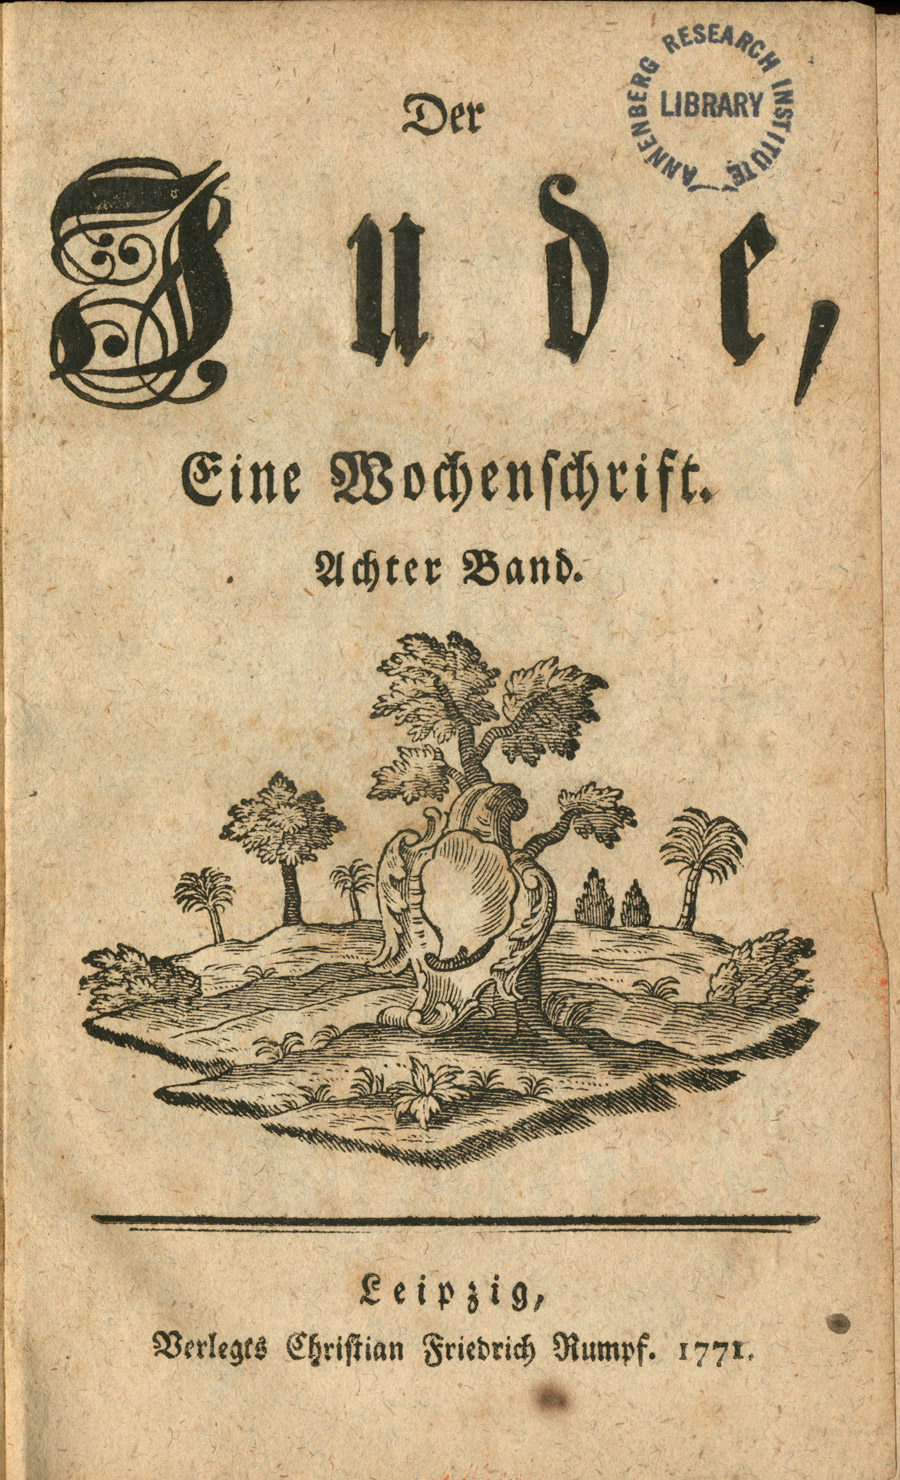 Title page of the 1771 printing